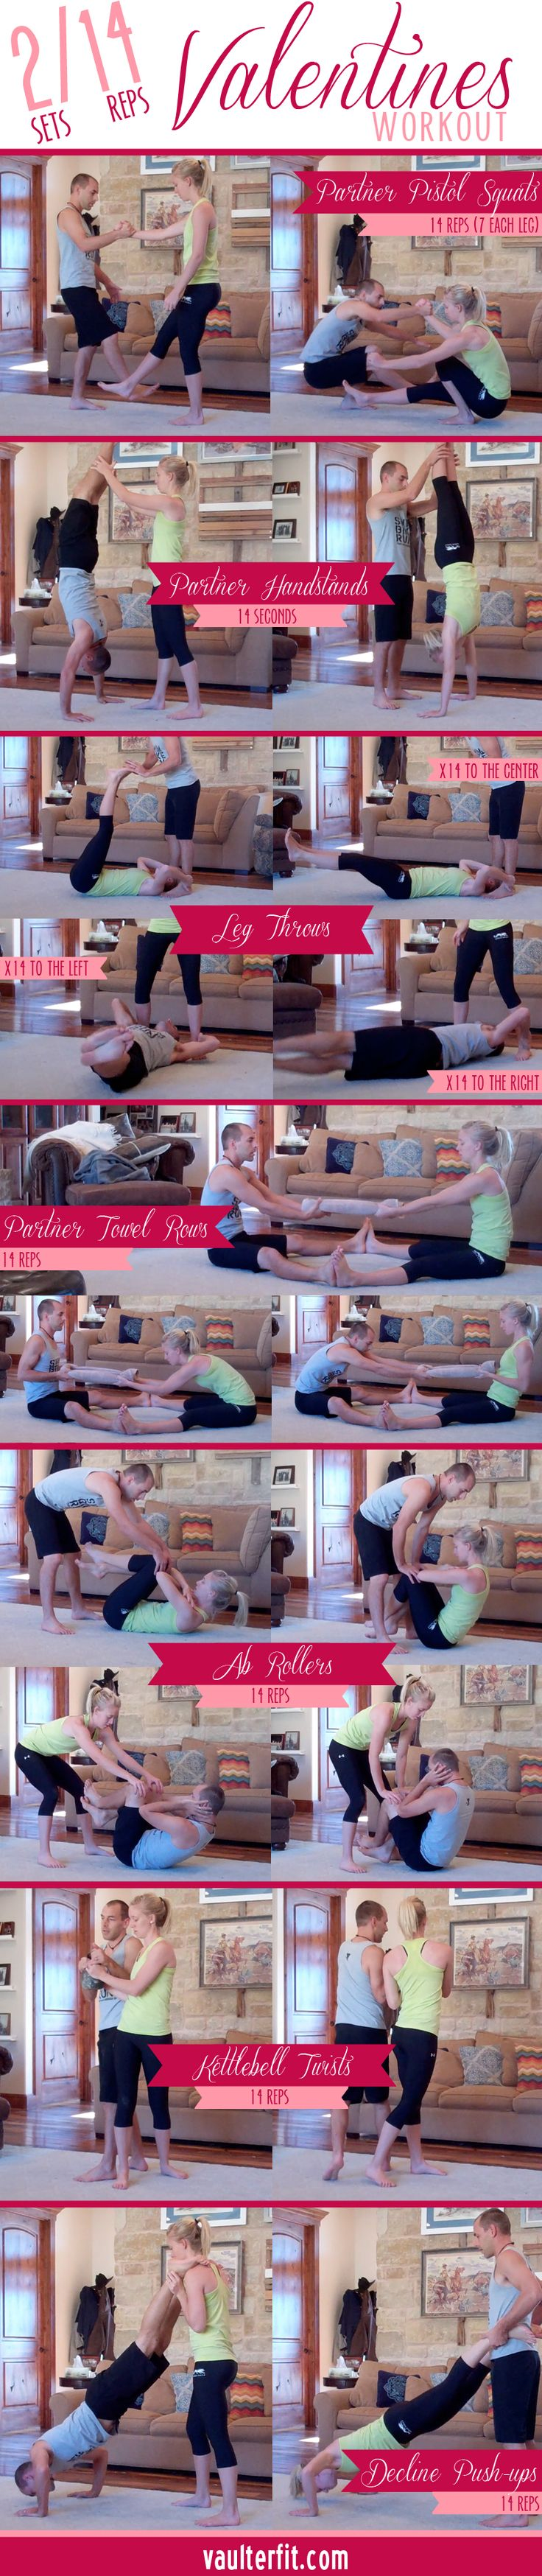 Valentine's Day Partner Workout - fun workout to do as a couple!